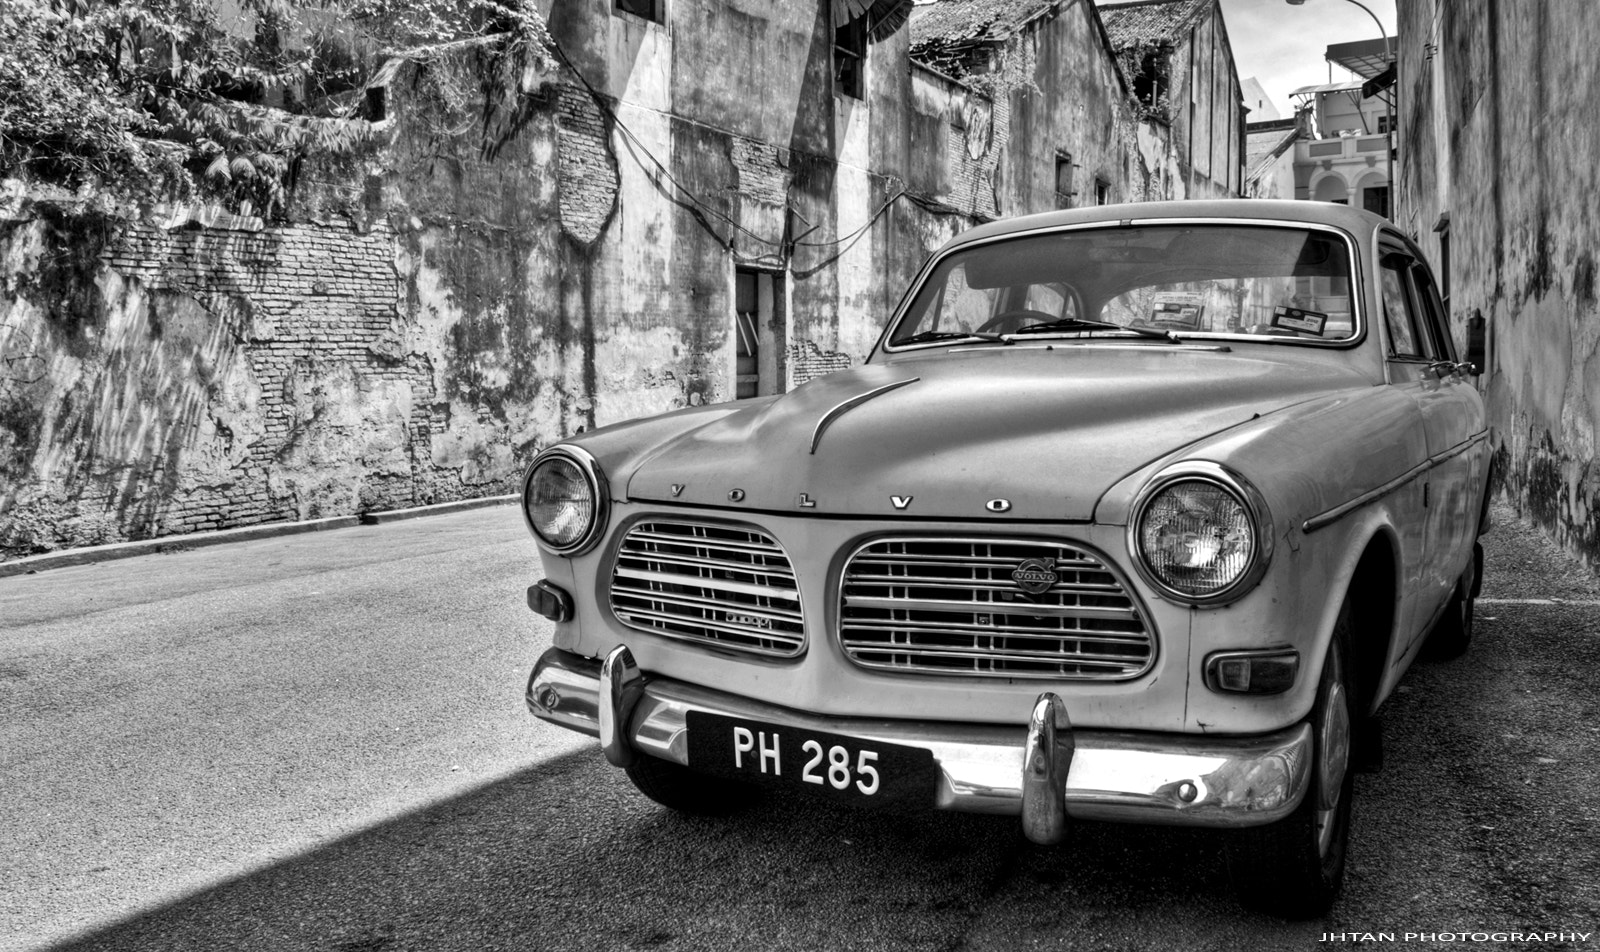 Photograph Volvo, the vintage classic. by Jh Tan on 500px